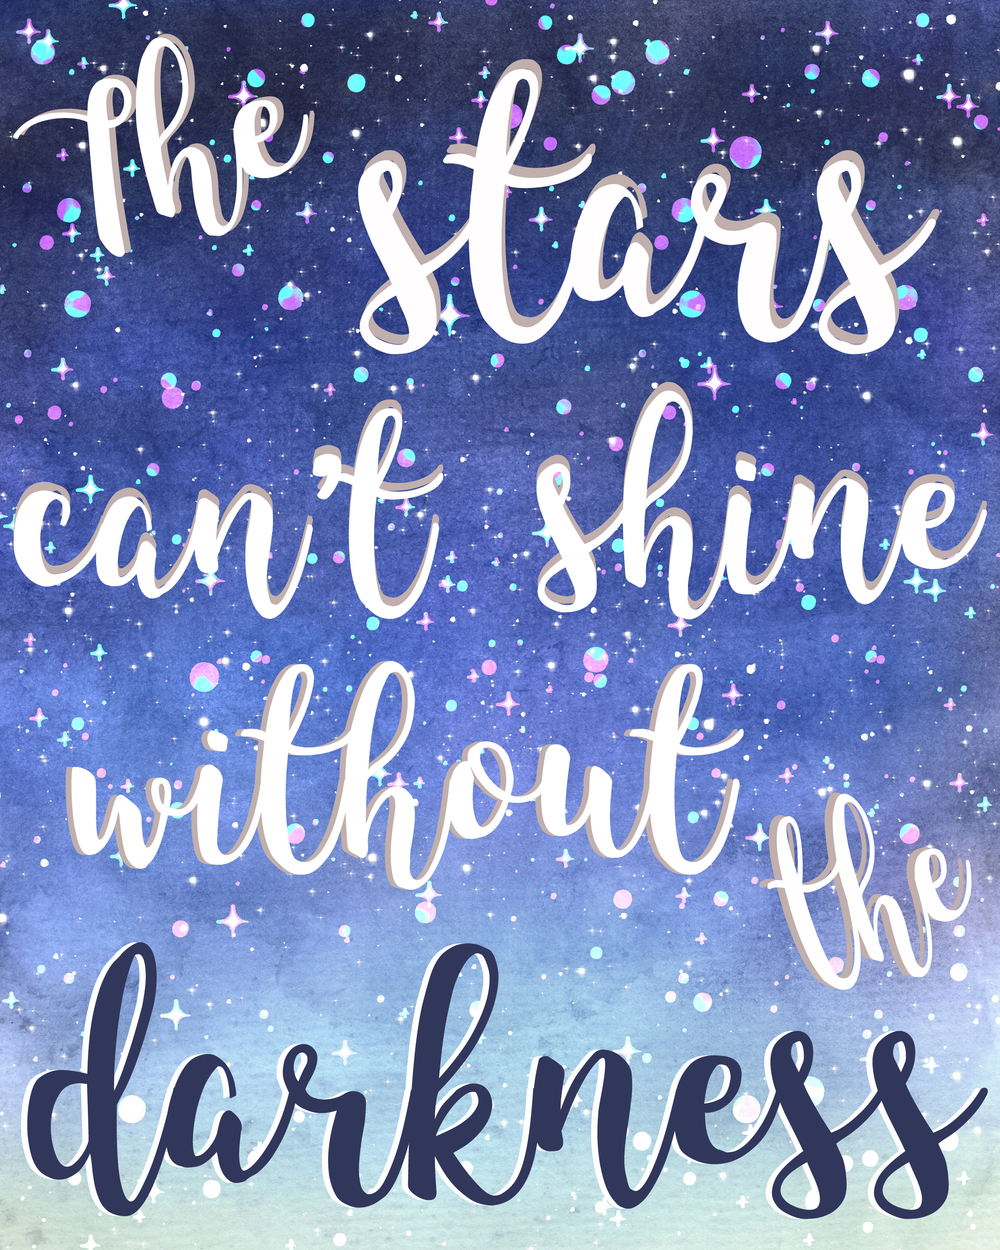 free printable the stars can't shine without the darkness 8x10 print copy.png